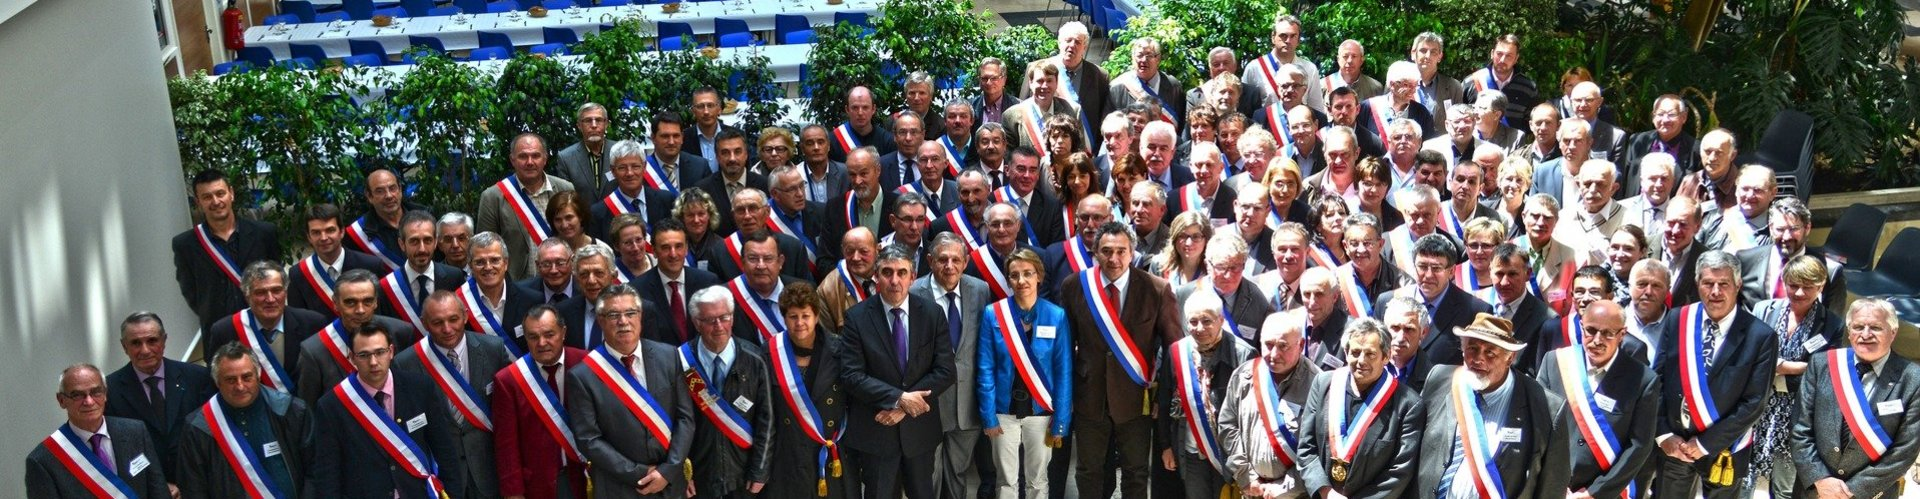 Association des maires du Cantal - AMf15